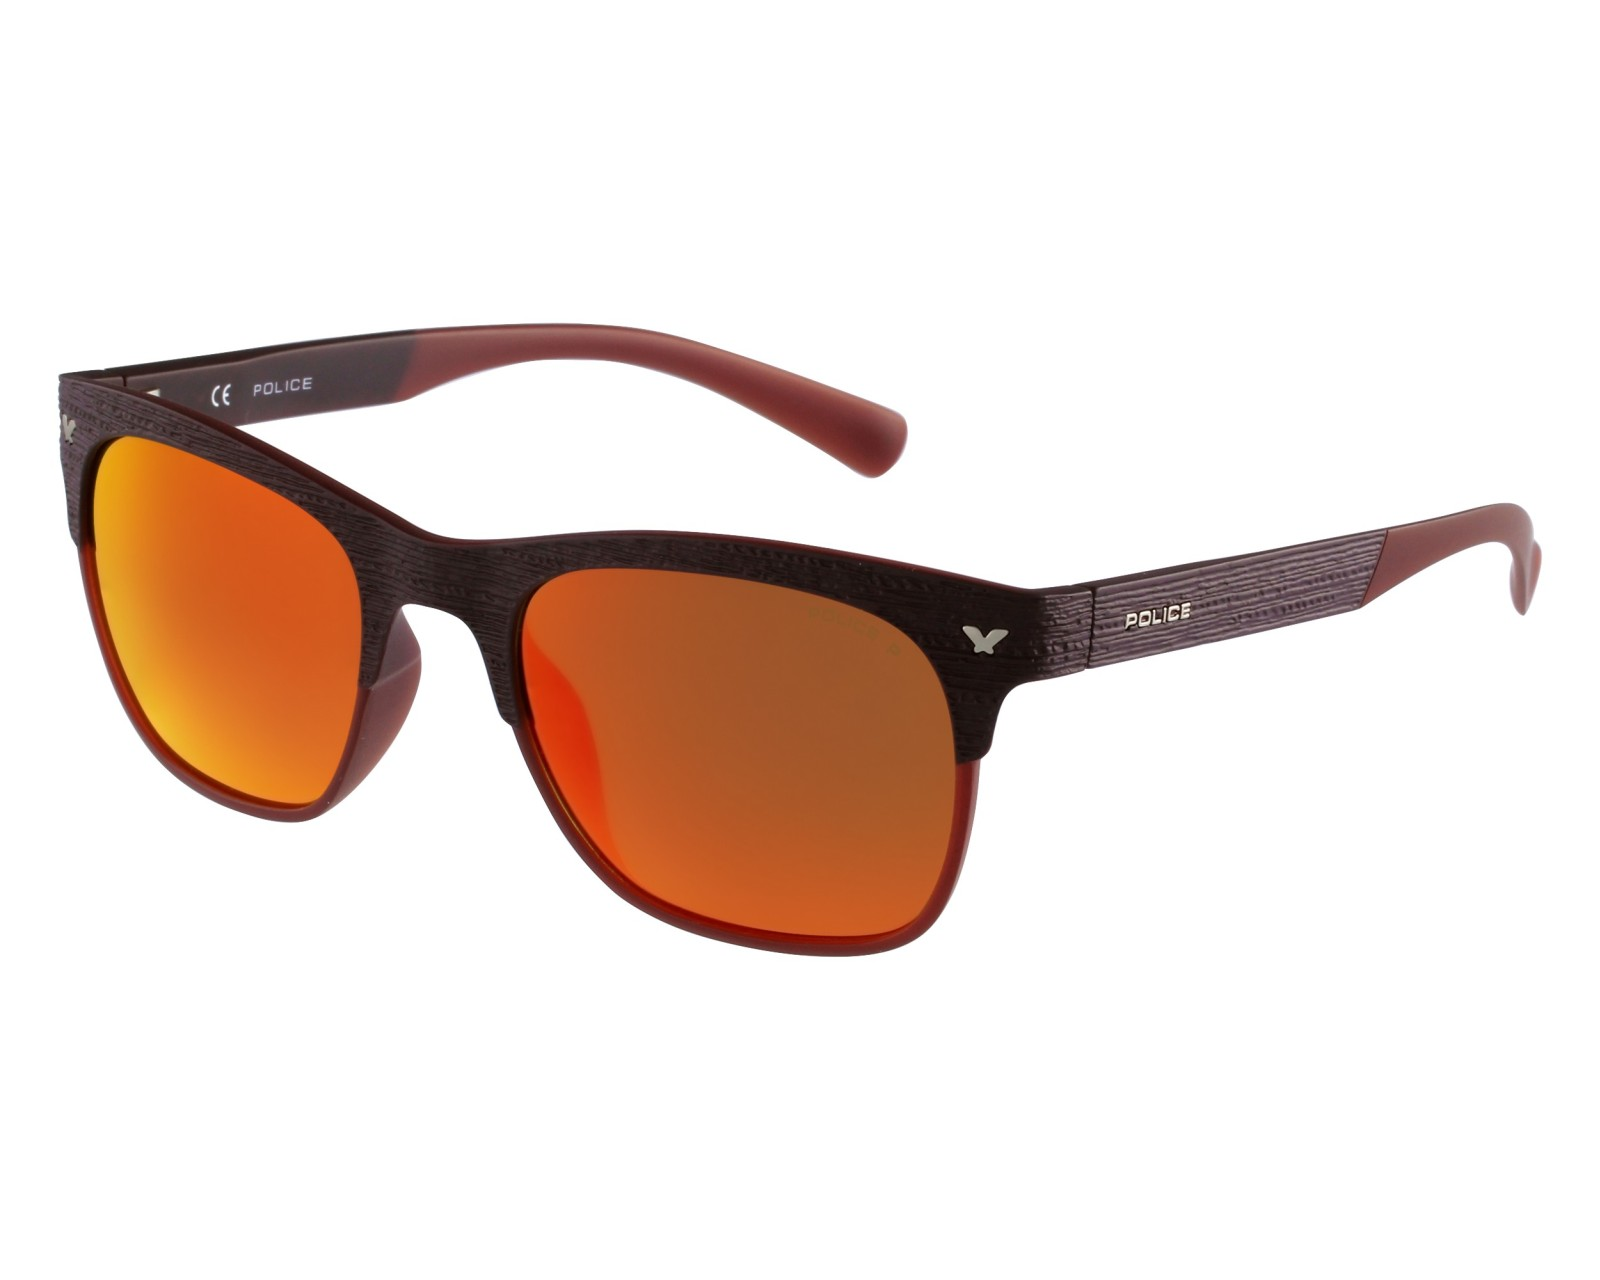 Sunglasses Police S-1950 NKJR - Brown front view df88fb97d55f